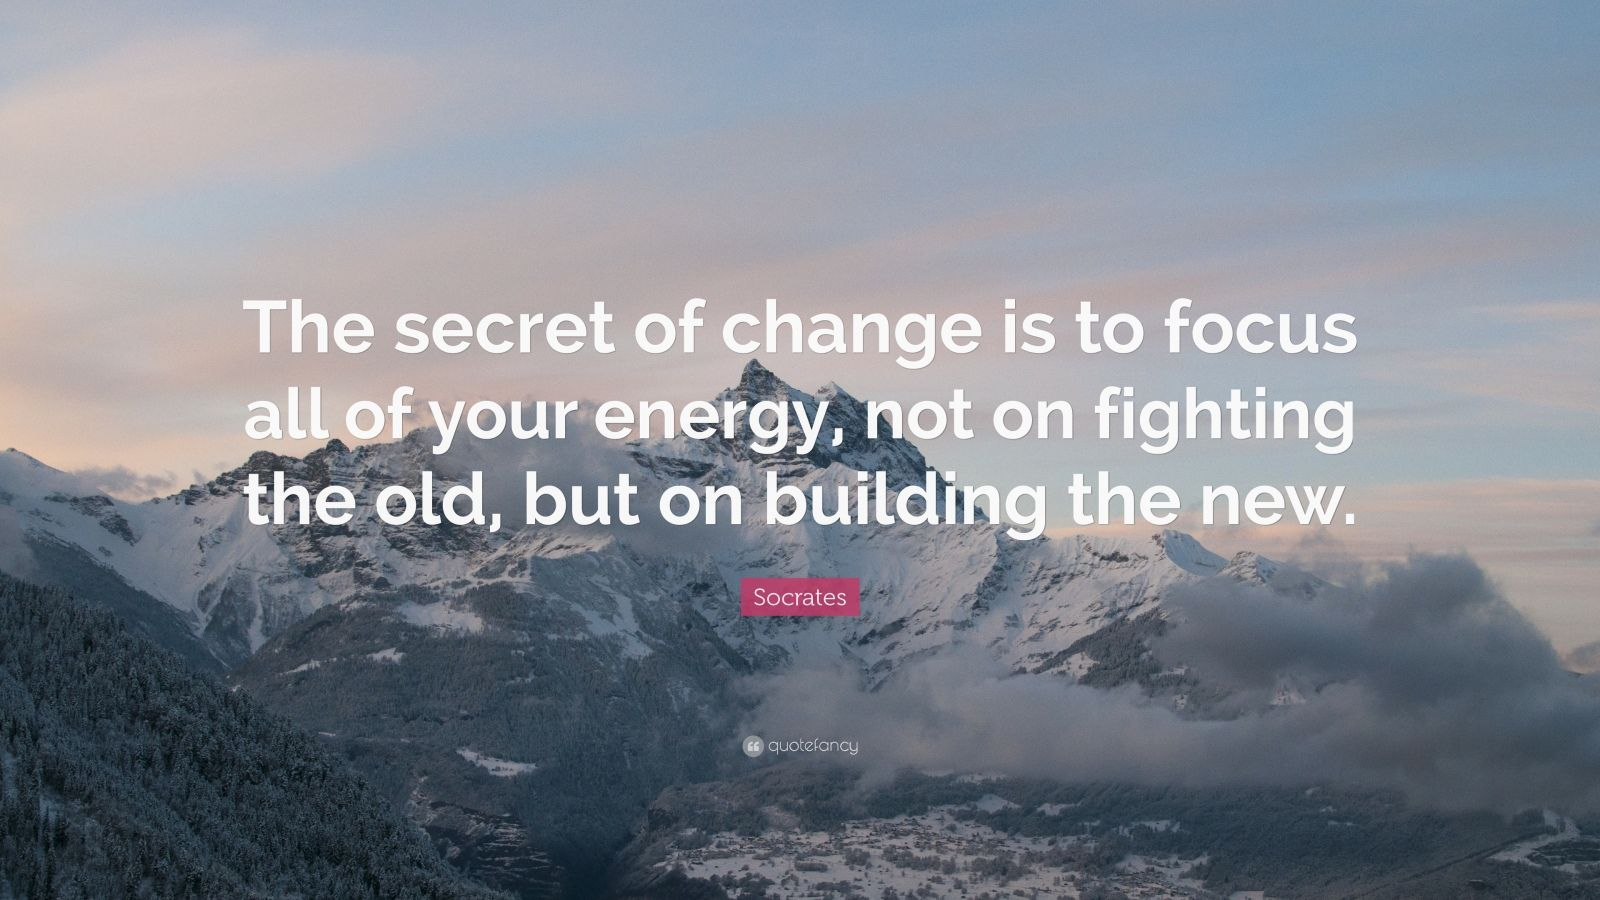 Shakespeare Wallpapers With Quotes Socrates Quote The Secret Of Change Is To Focus All Of